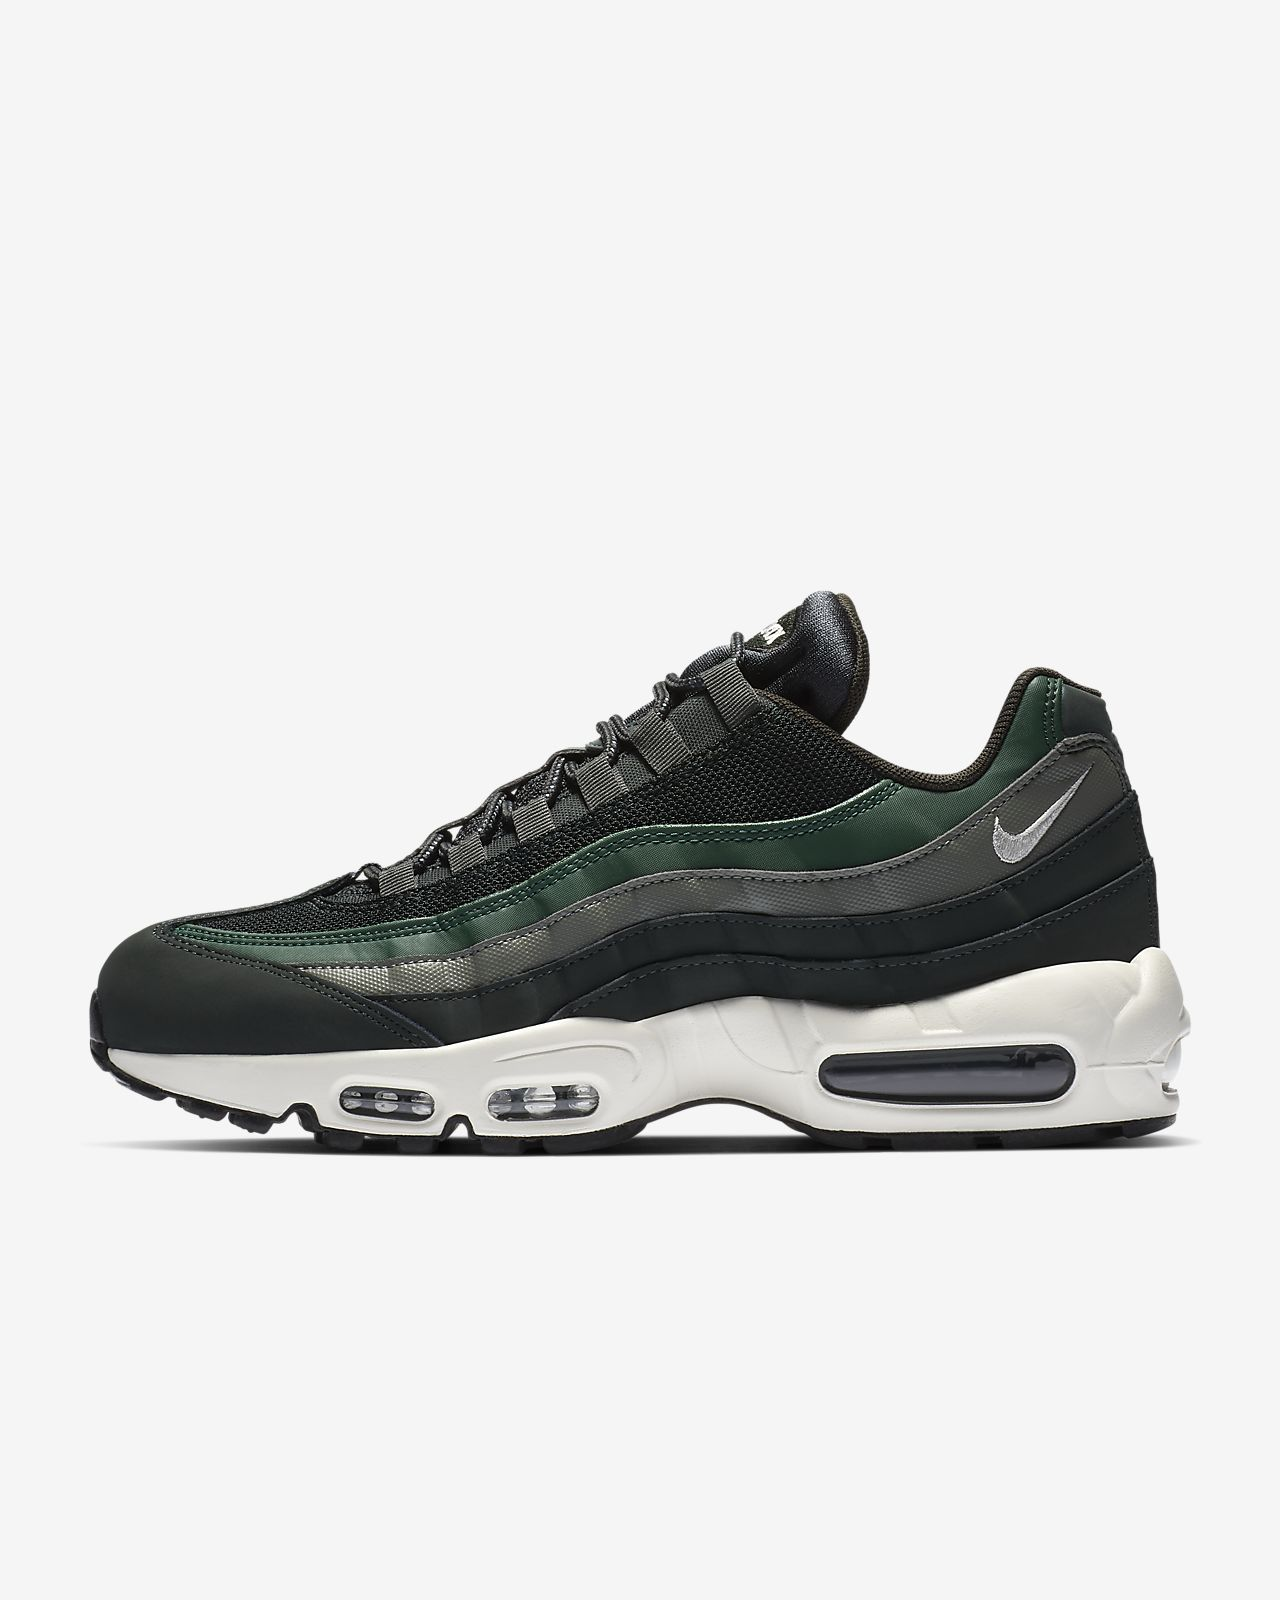 innovative design 7d147 d2661 Men s Shoe. Nike Air Max 95 Essential